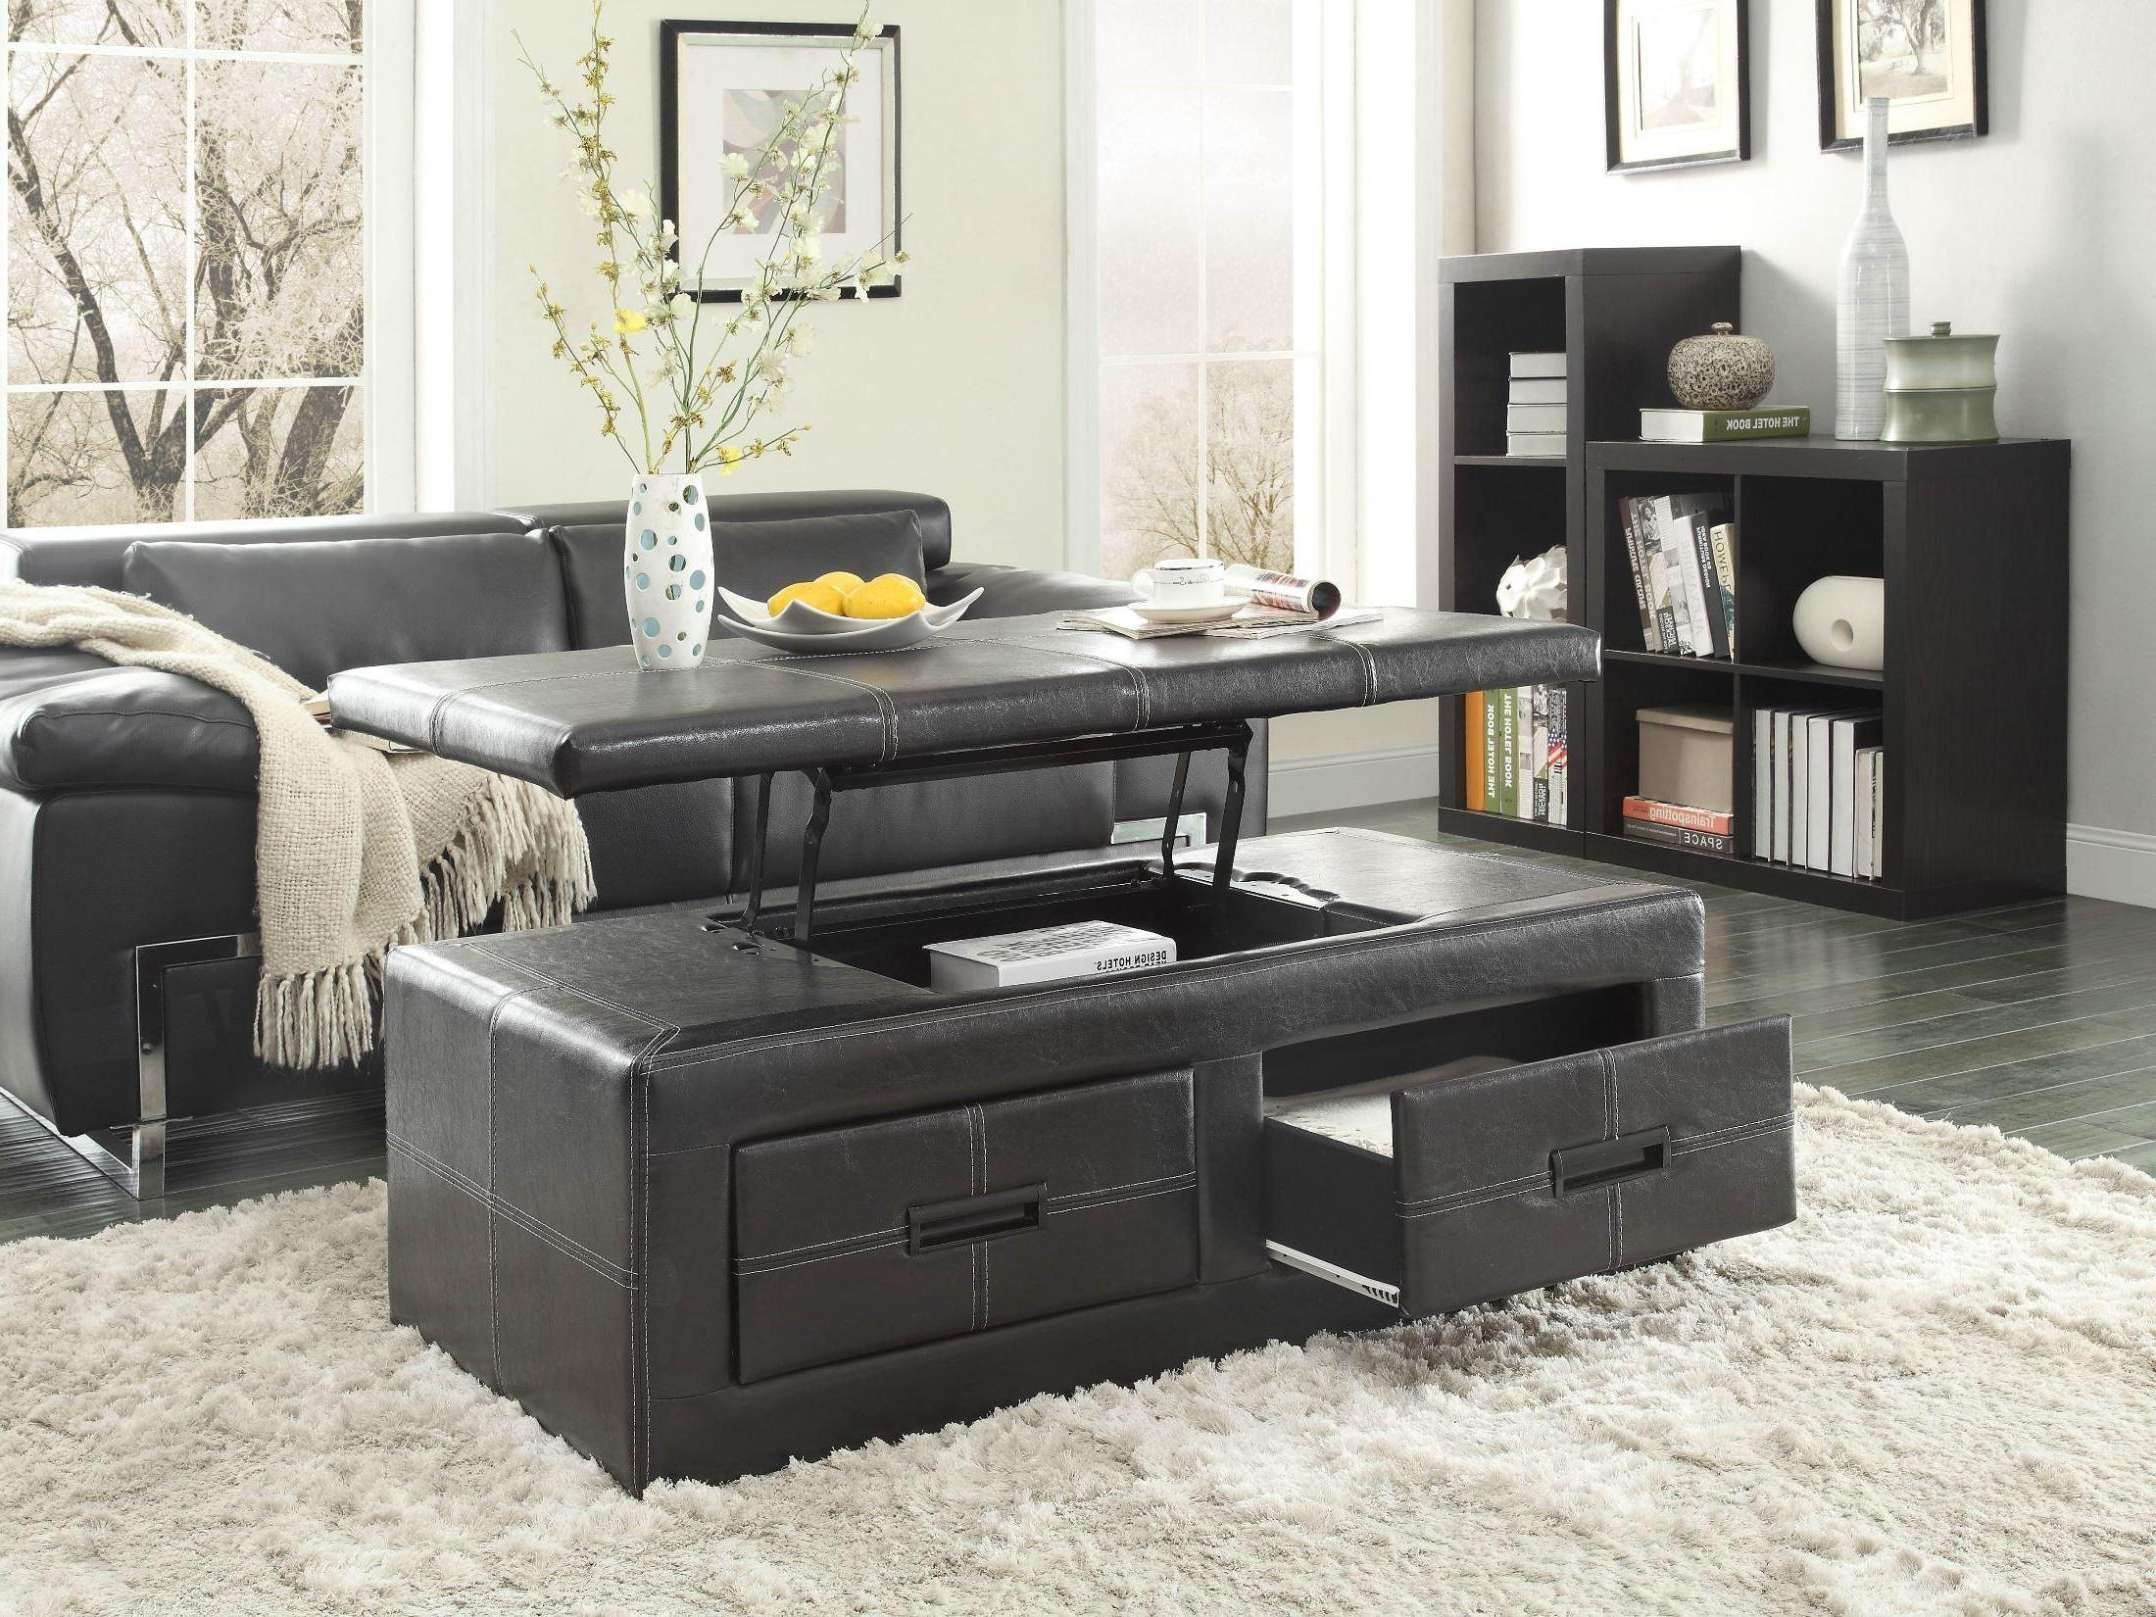 Coffee Tables : Parsons Lift Top Coffee Table In Black That Lifts Pertaining To 2018 Coffee Tables With Lift Top Storage (View 7 of 20)